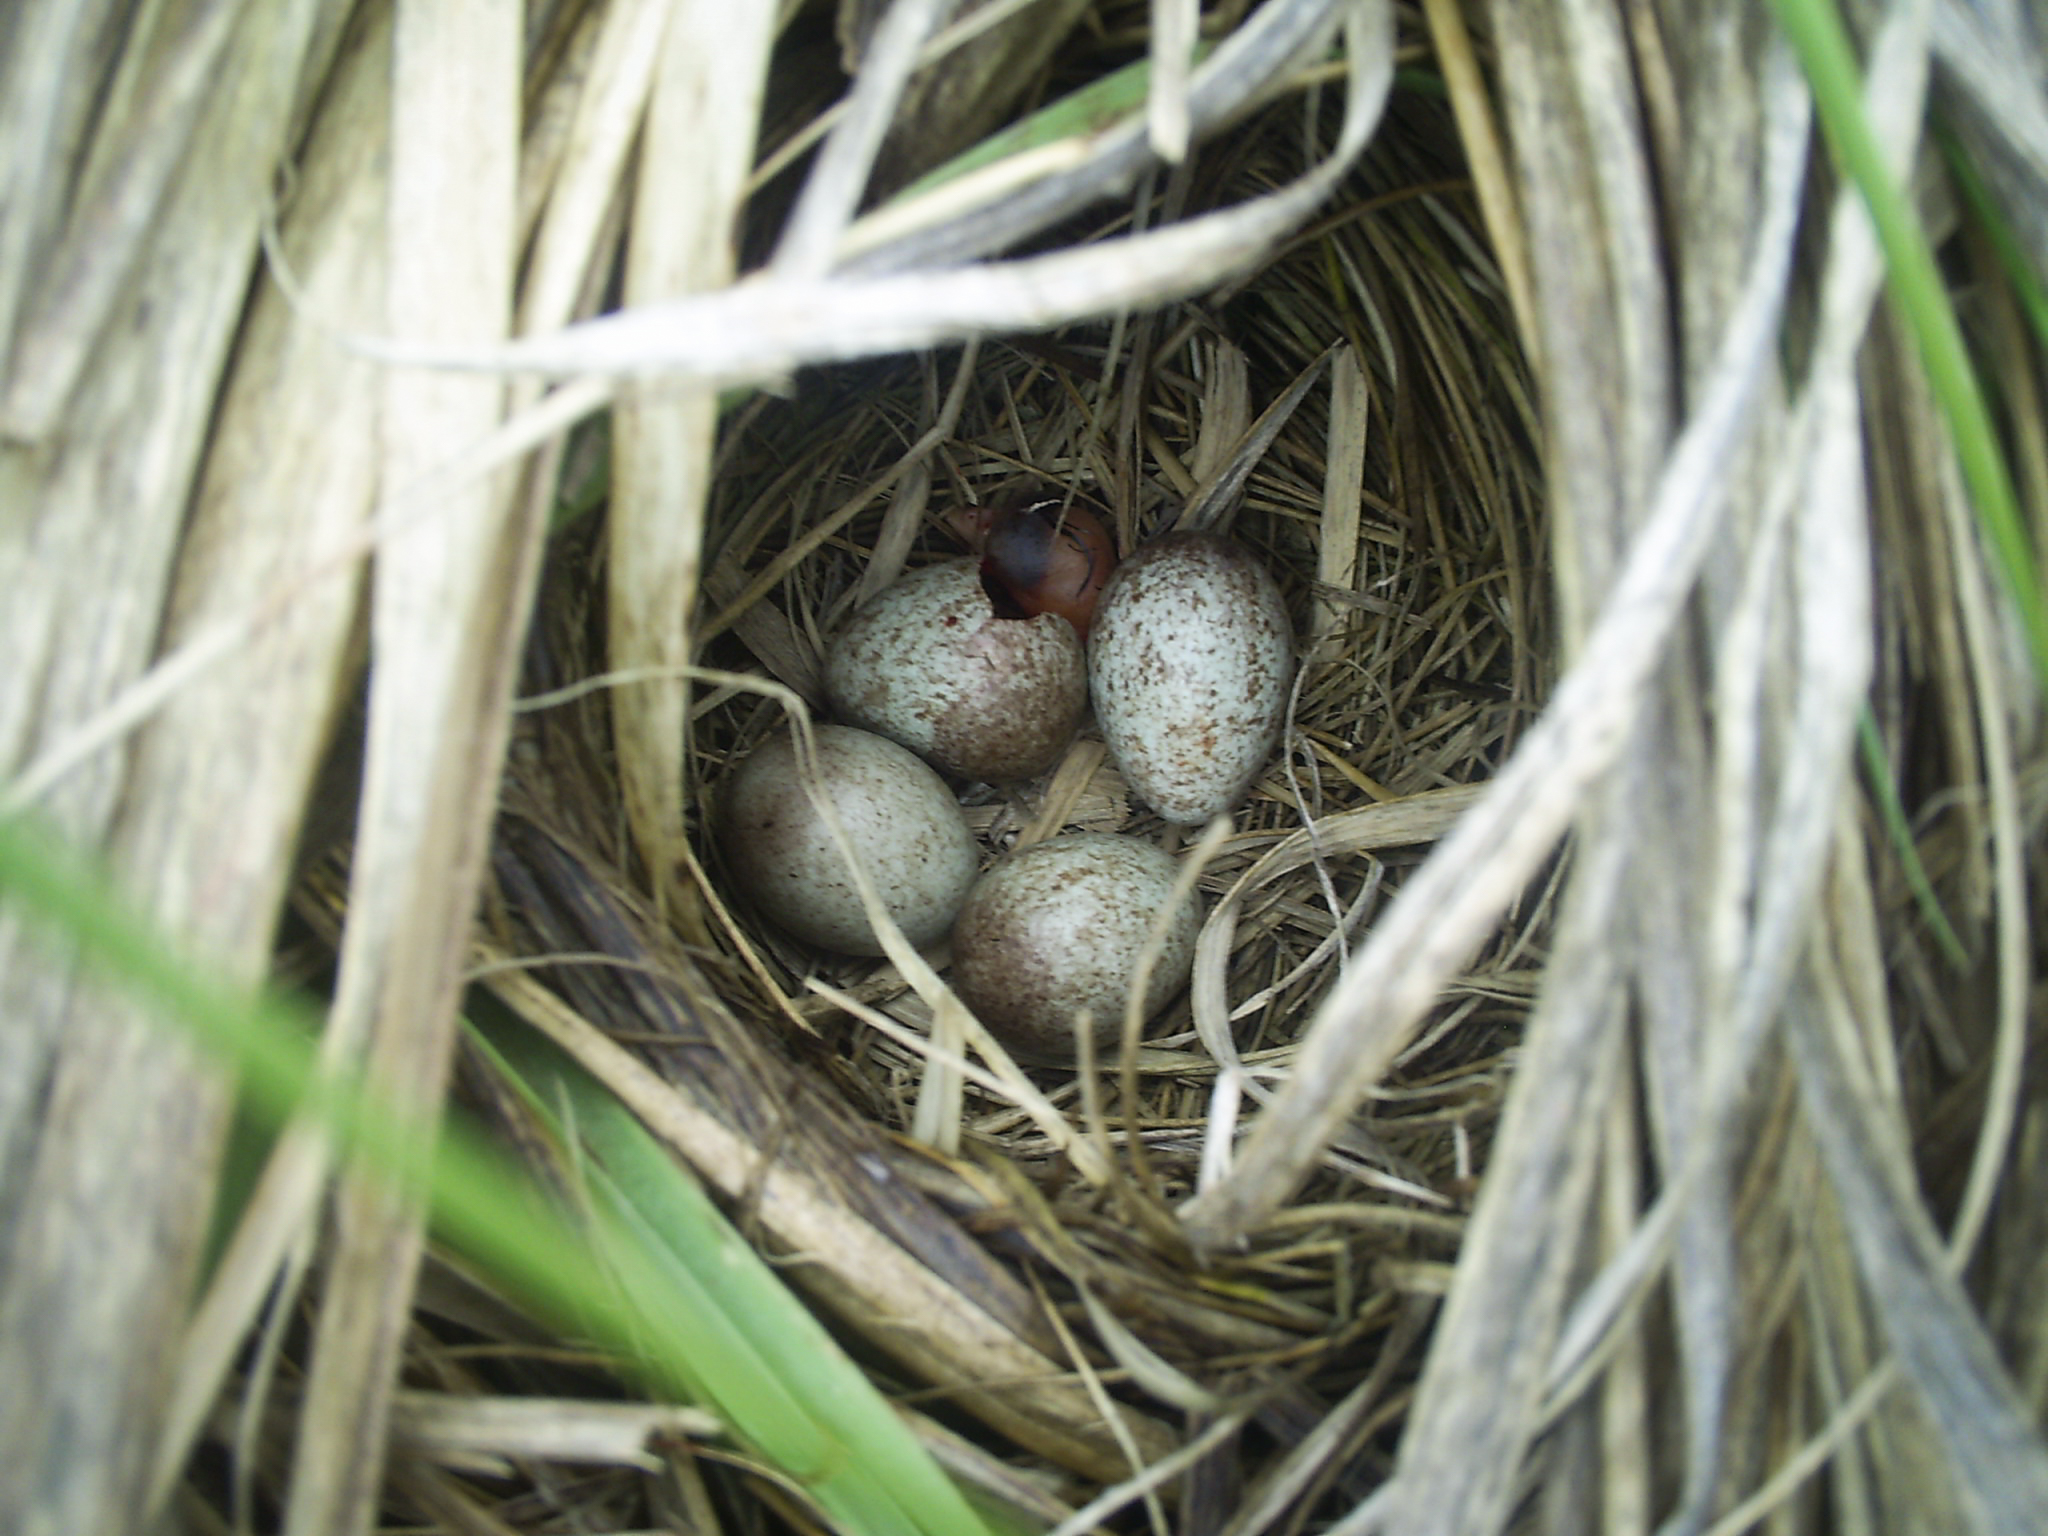 A hatching saltmarsh sparrow. Caption: A saltmarsh sparrow is the first to hatch in its clutch. Photo by Carolyn Byers